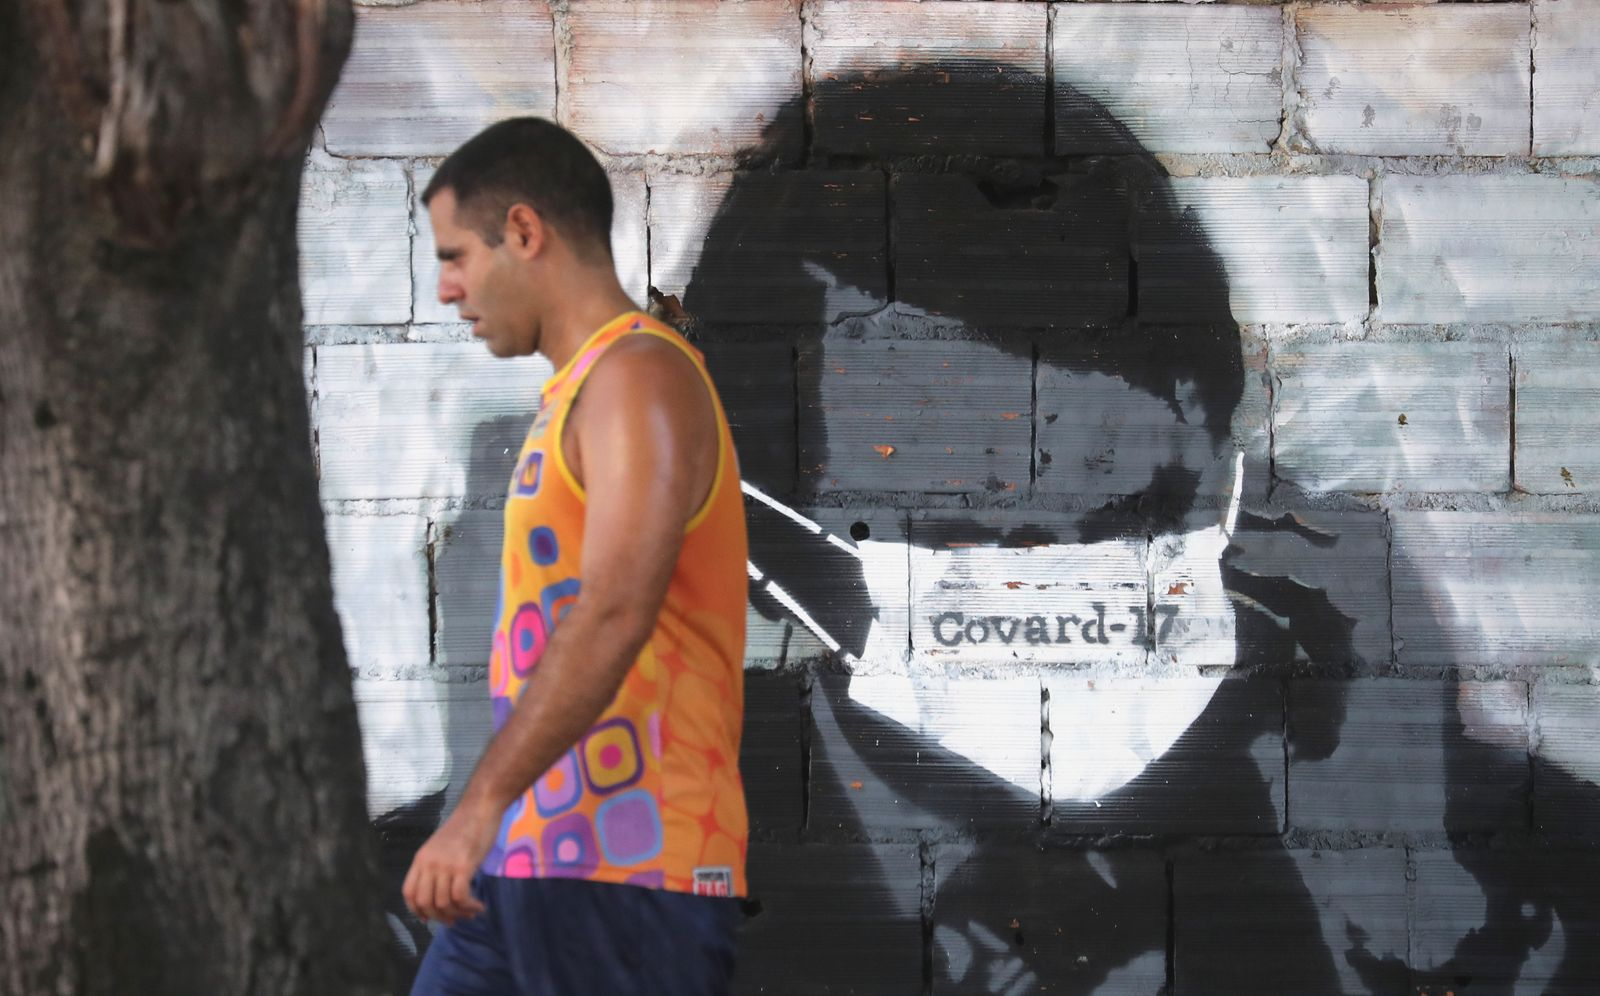 Man walks past by a graffiti depicting Brazilian president Bolsonaro adjusting his protective face mask during the coronavirus disease (COVID-19) outbreak, in Rio de Janeiro